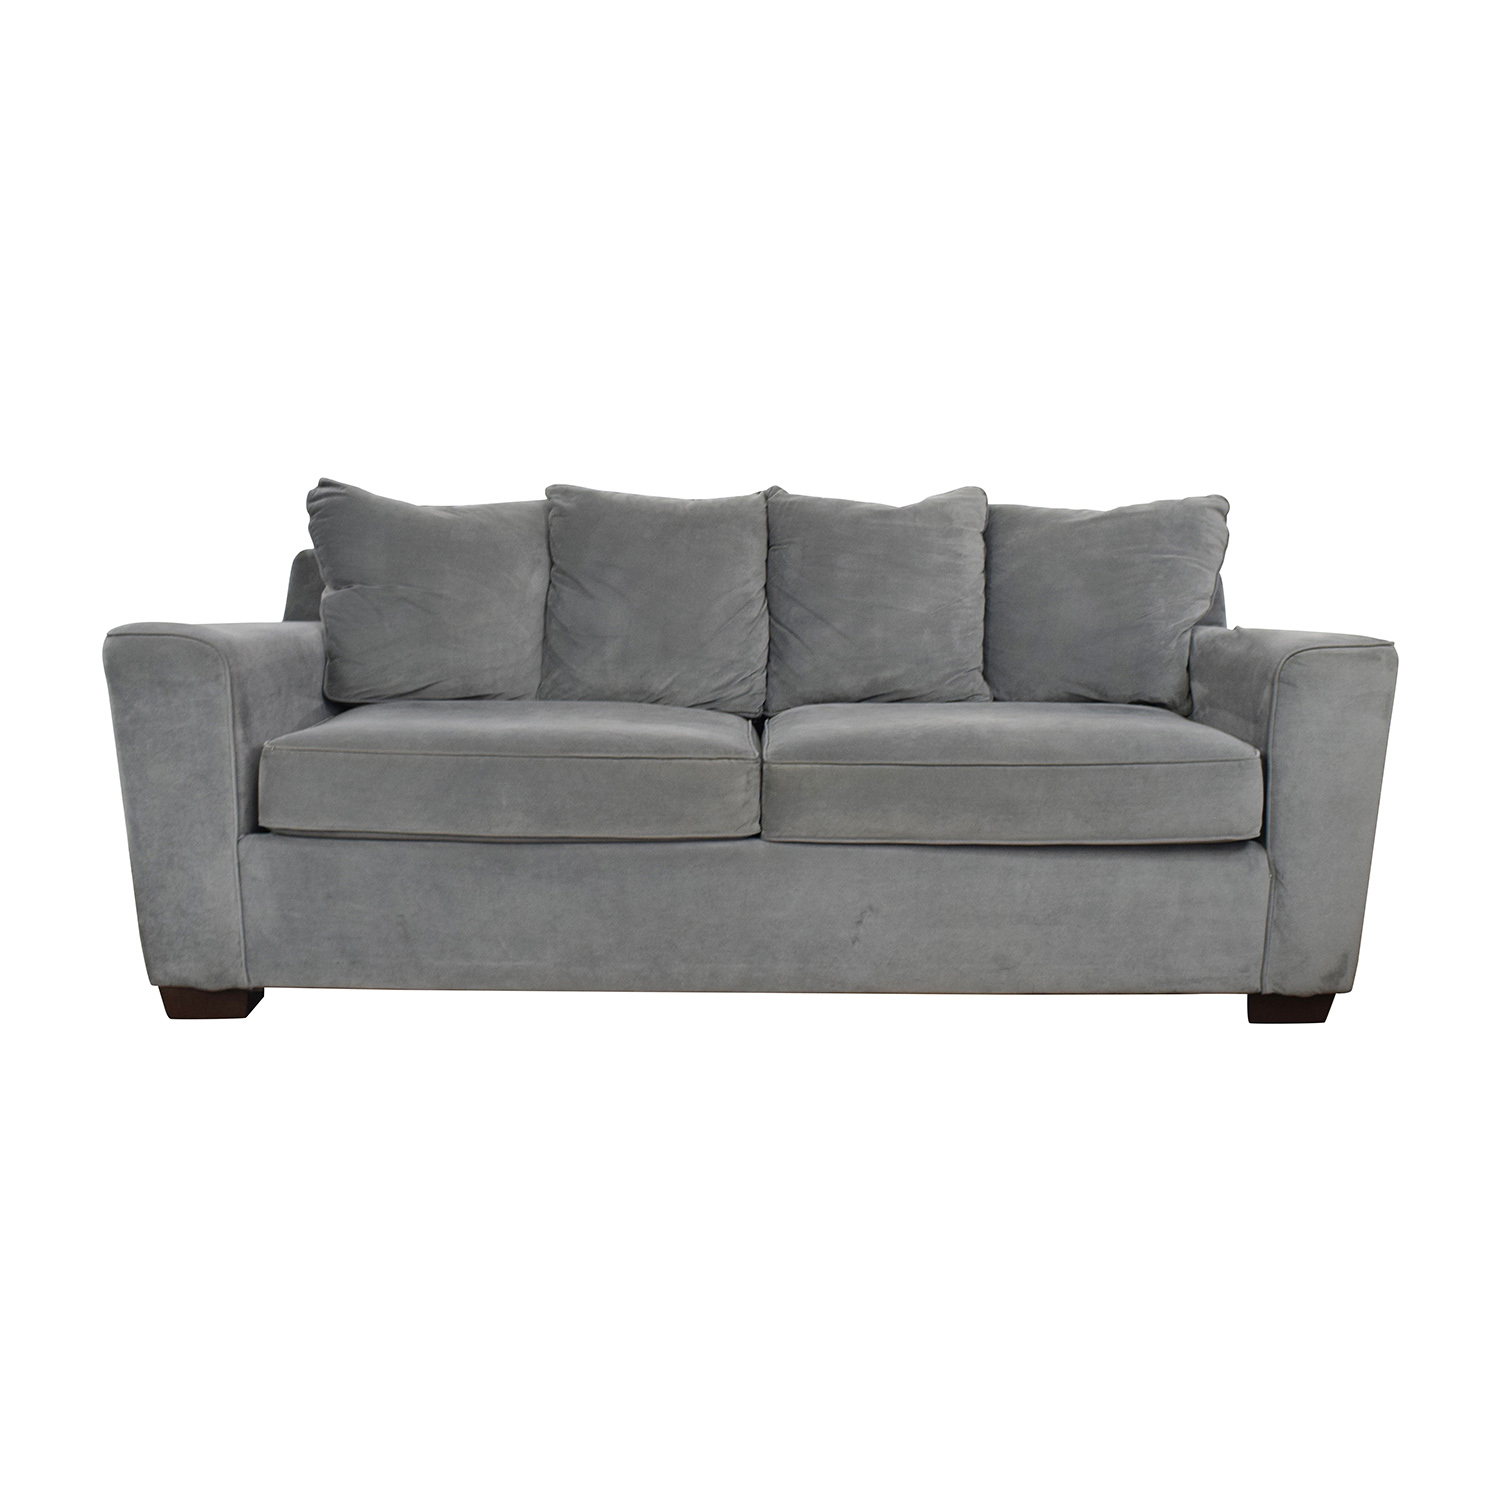 Jennifer Convertibles Grey Couch sale